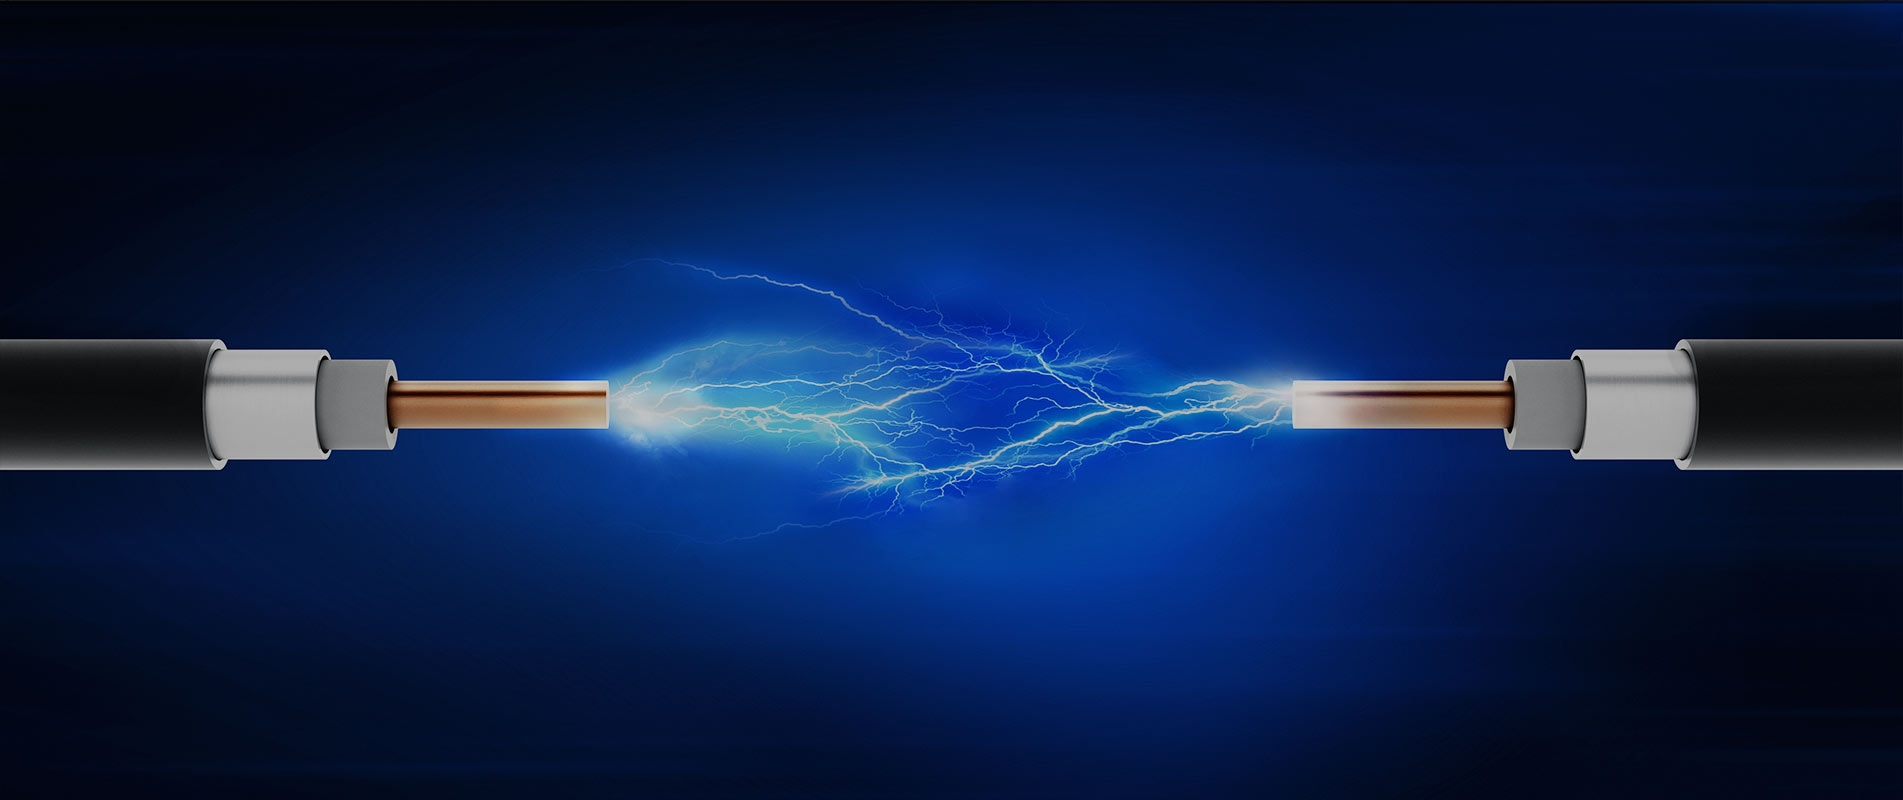 Aaelectric (@aaelectric) Cover Image